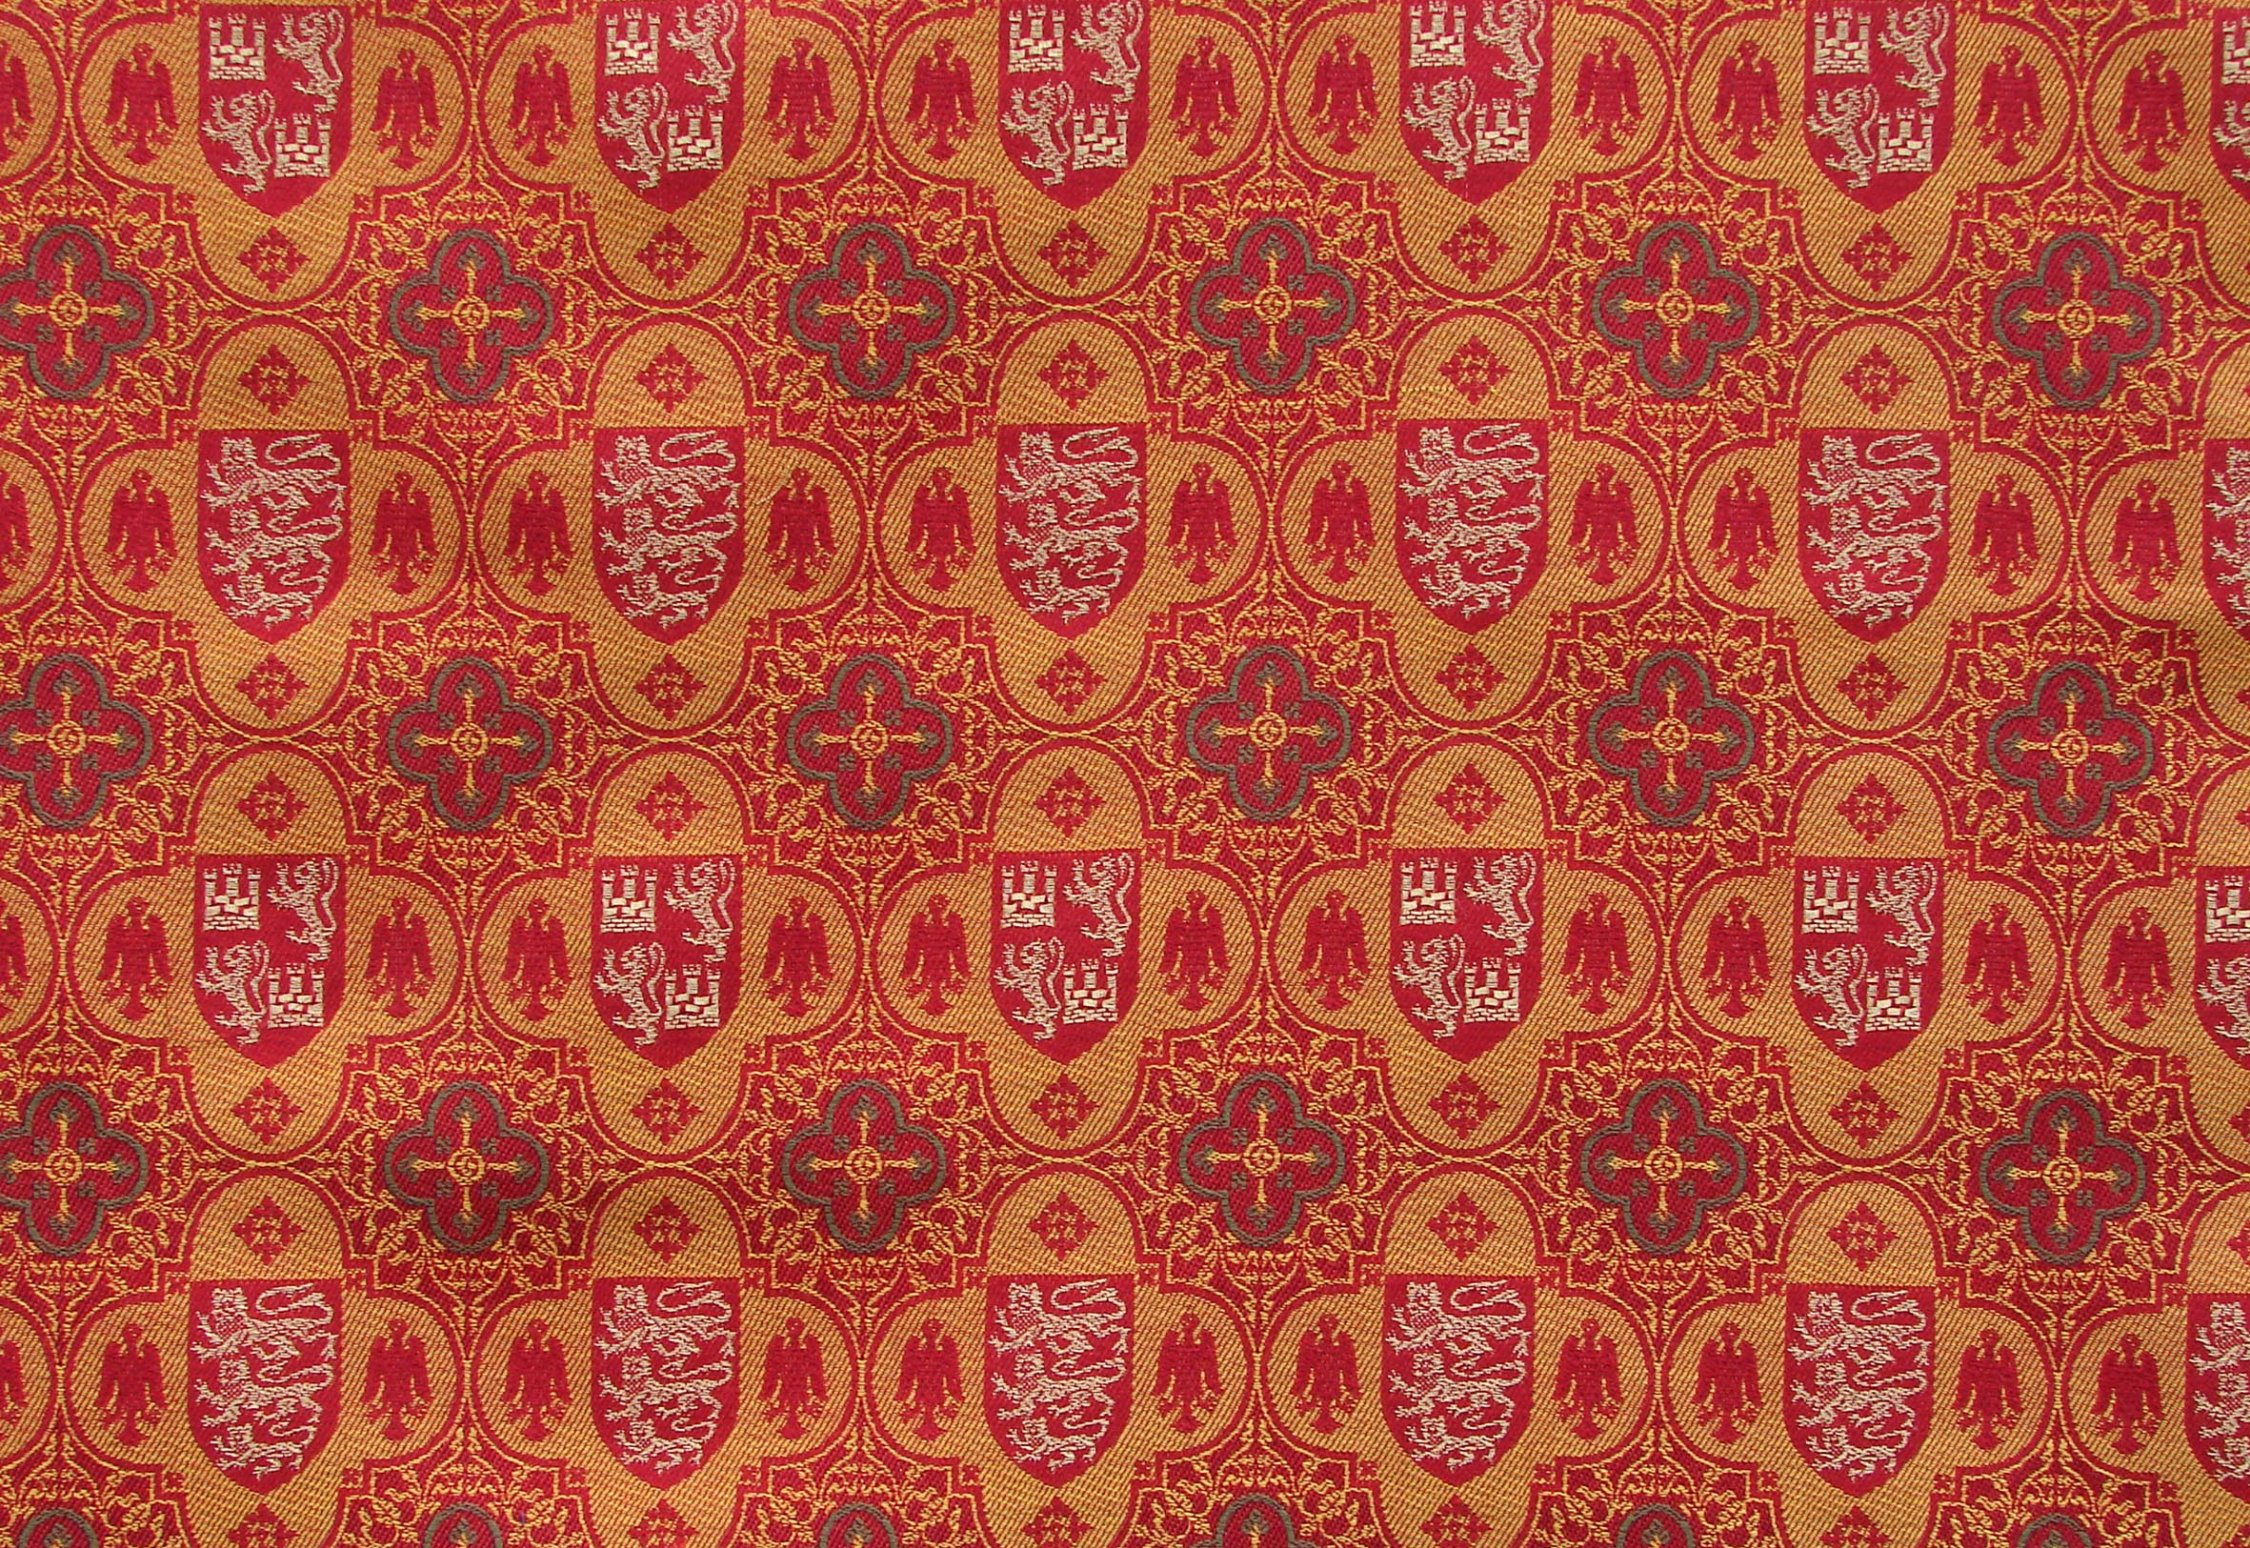 Specially designed and woven textiles - 'Heraldic Quatrefoil'